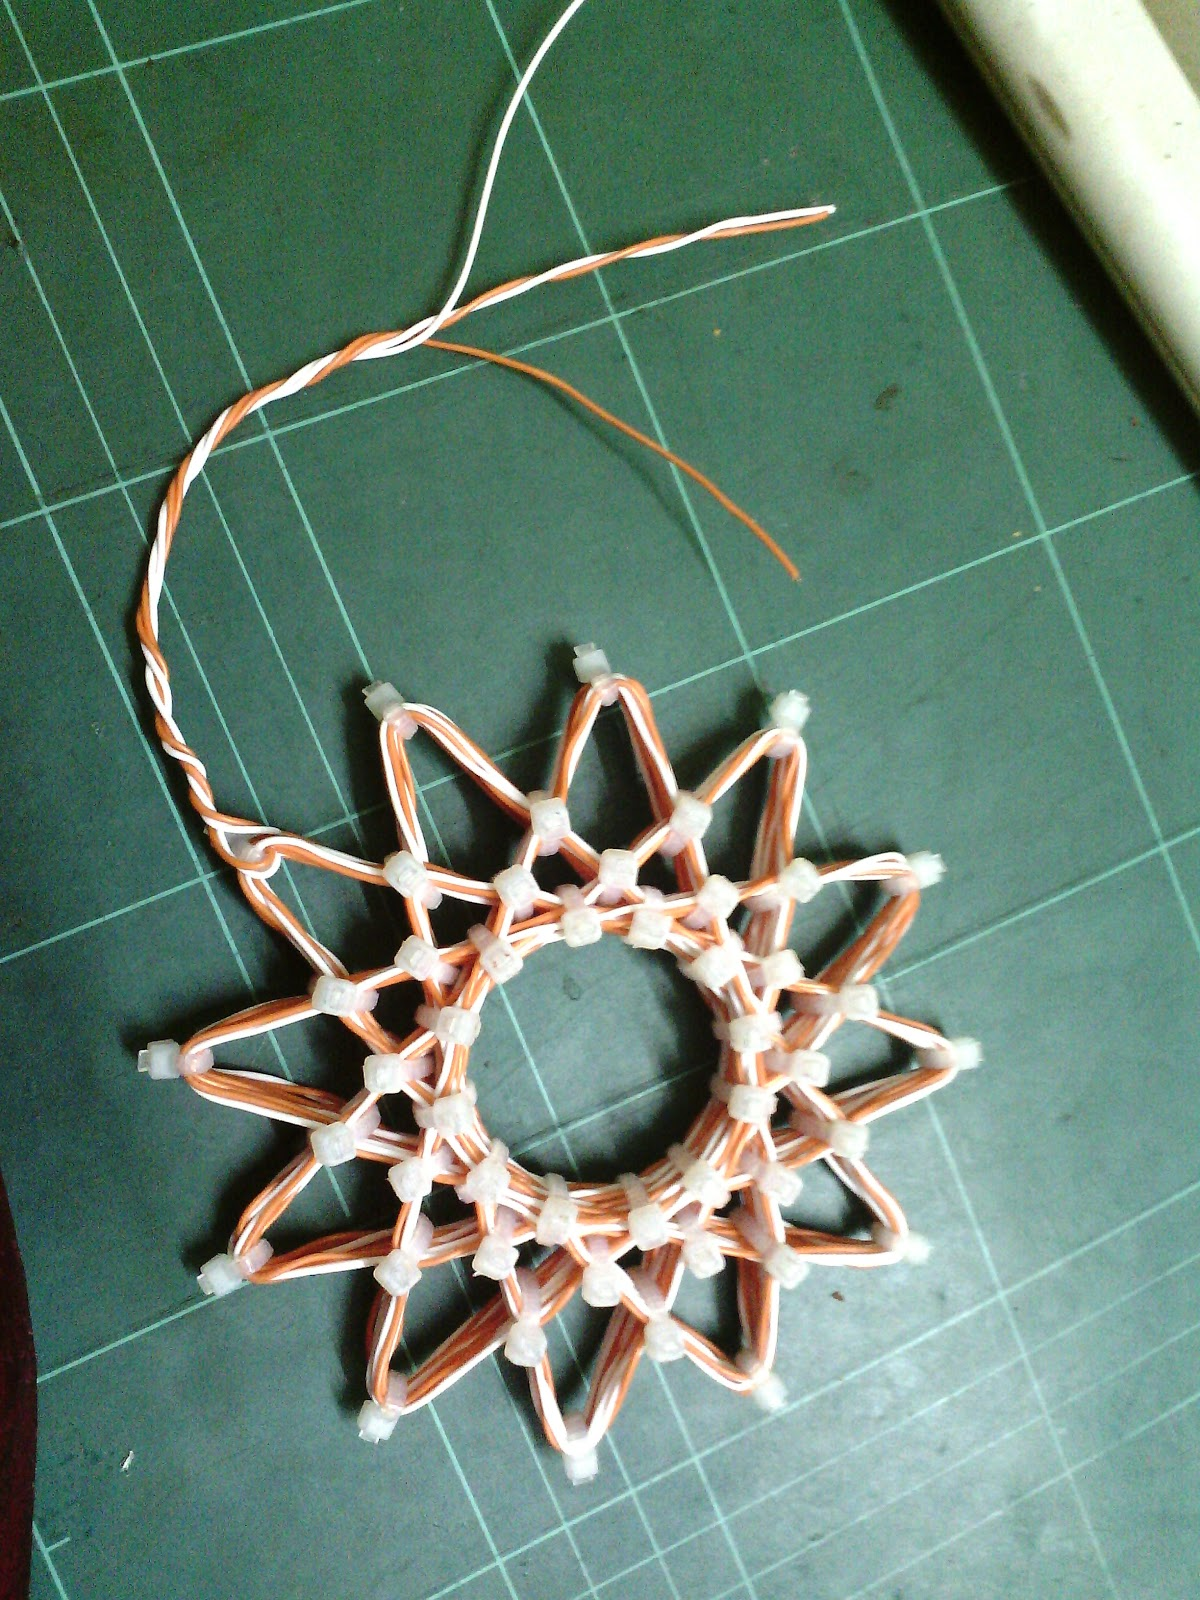 Psychoactive Gold Bifilar Wound Starship Rodin Coil With Winding Diagram These Are The Tools Needed To Fit In Cable Ties Get Right Shape